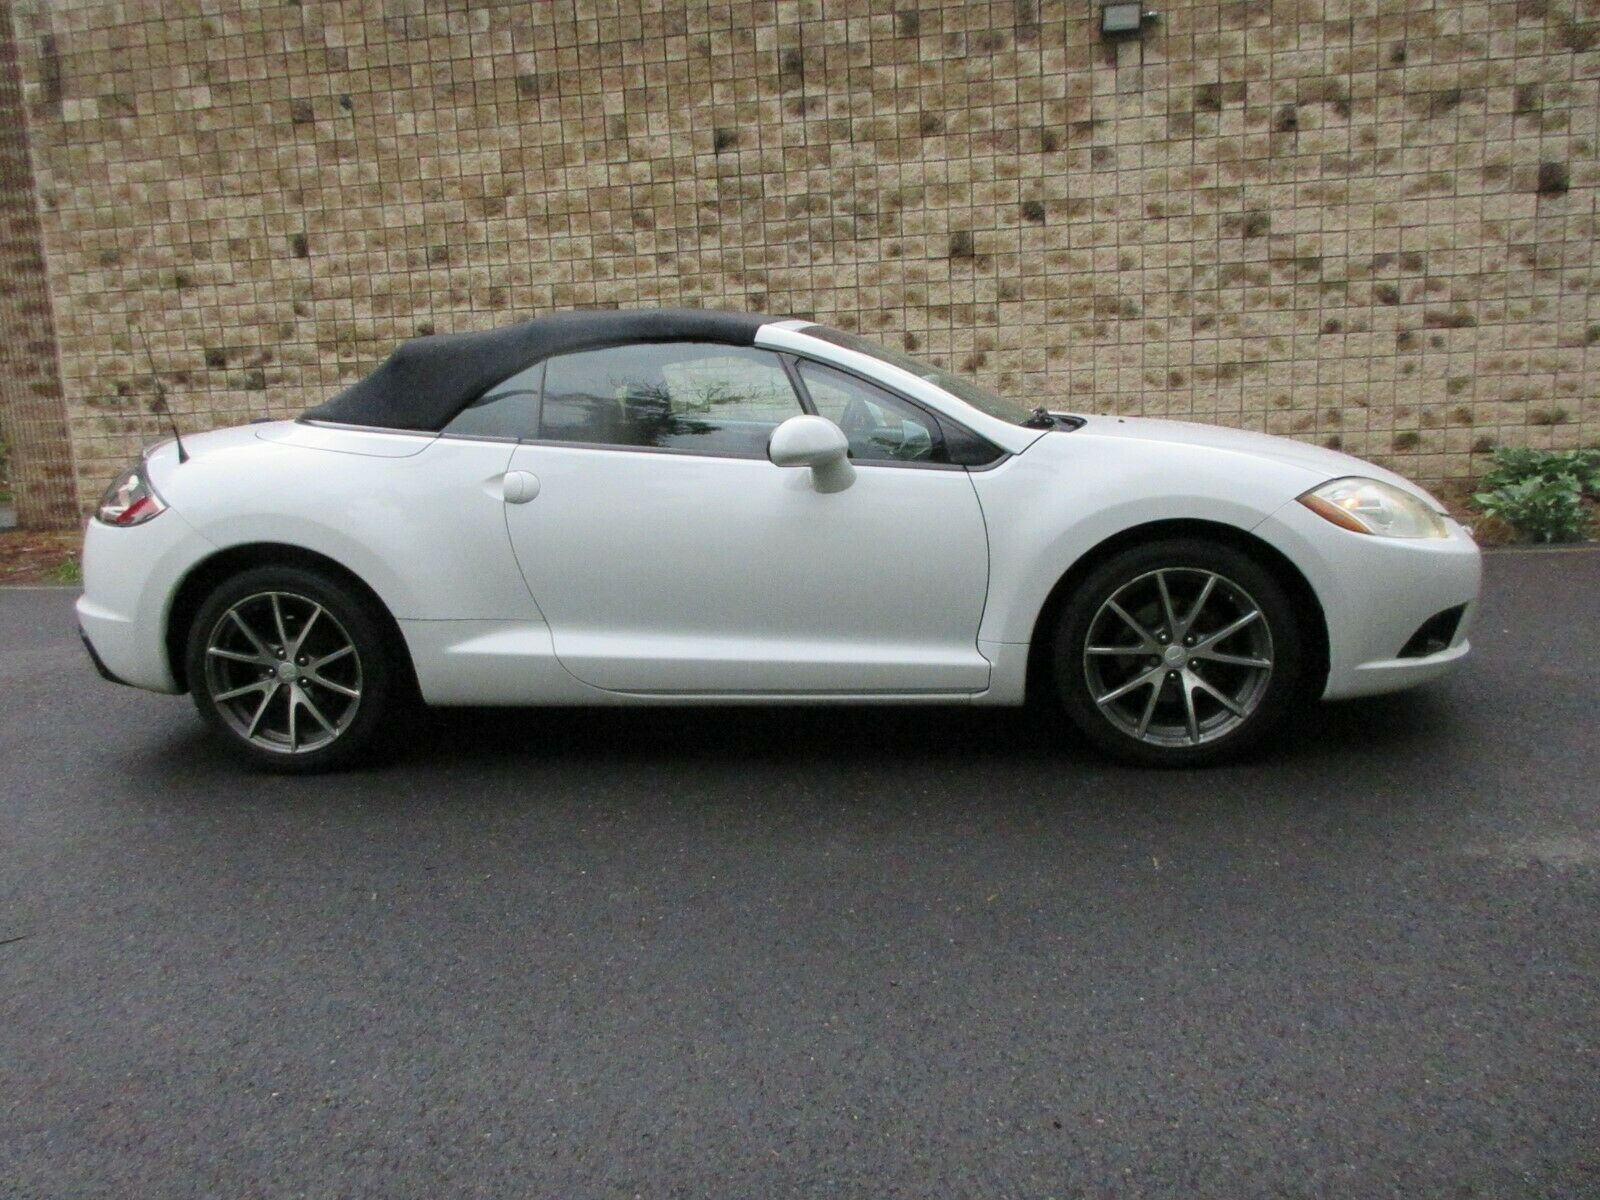 Eclipse SPYDER GS SportWHITE ON BLACK Convertible LEATHER HEATED SEATS GREAT!